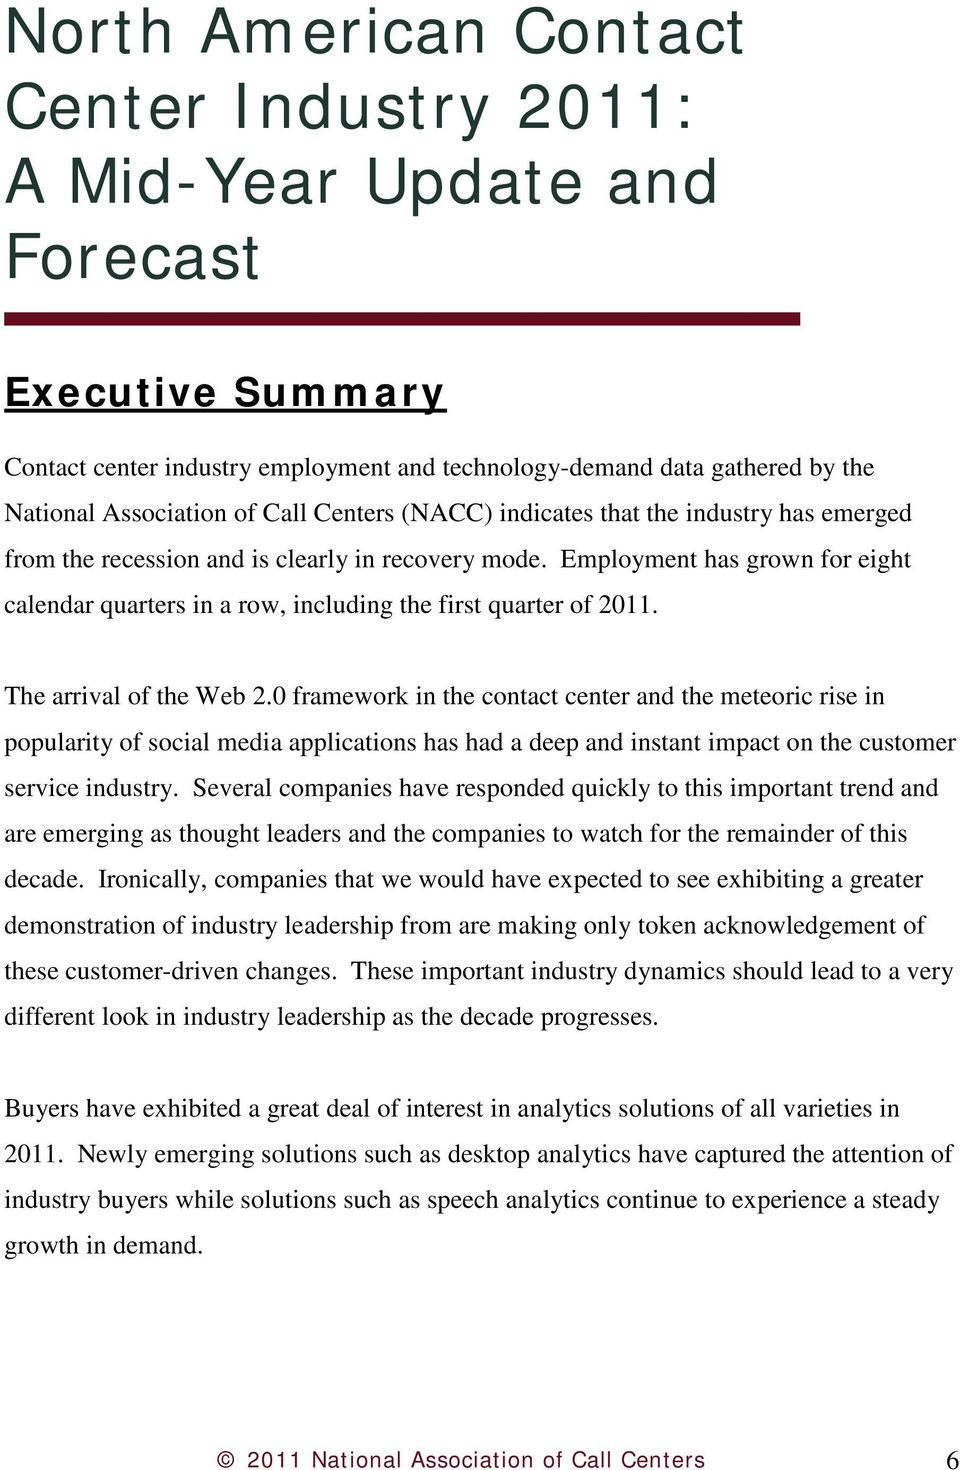 Employment has grown for eight calendar quarters in a row, including the first quarter of 2011. The arrival of the Web 2.